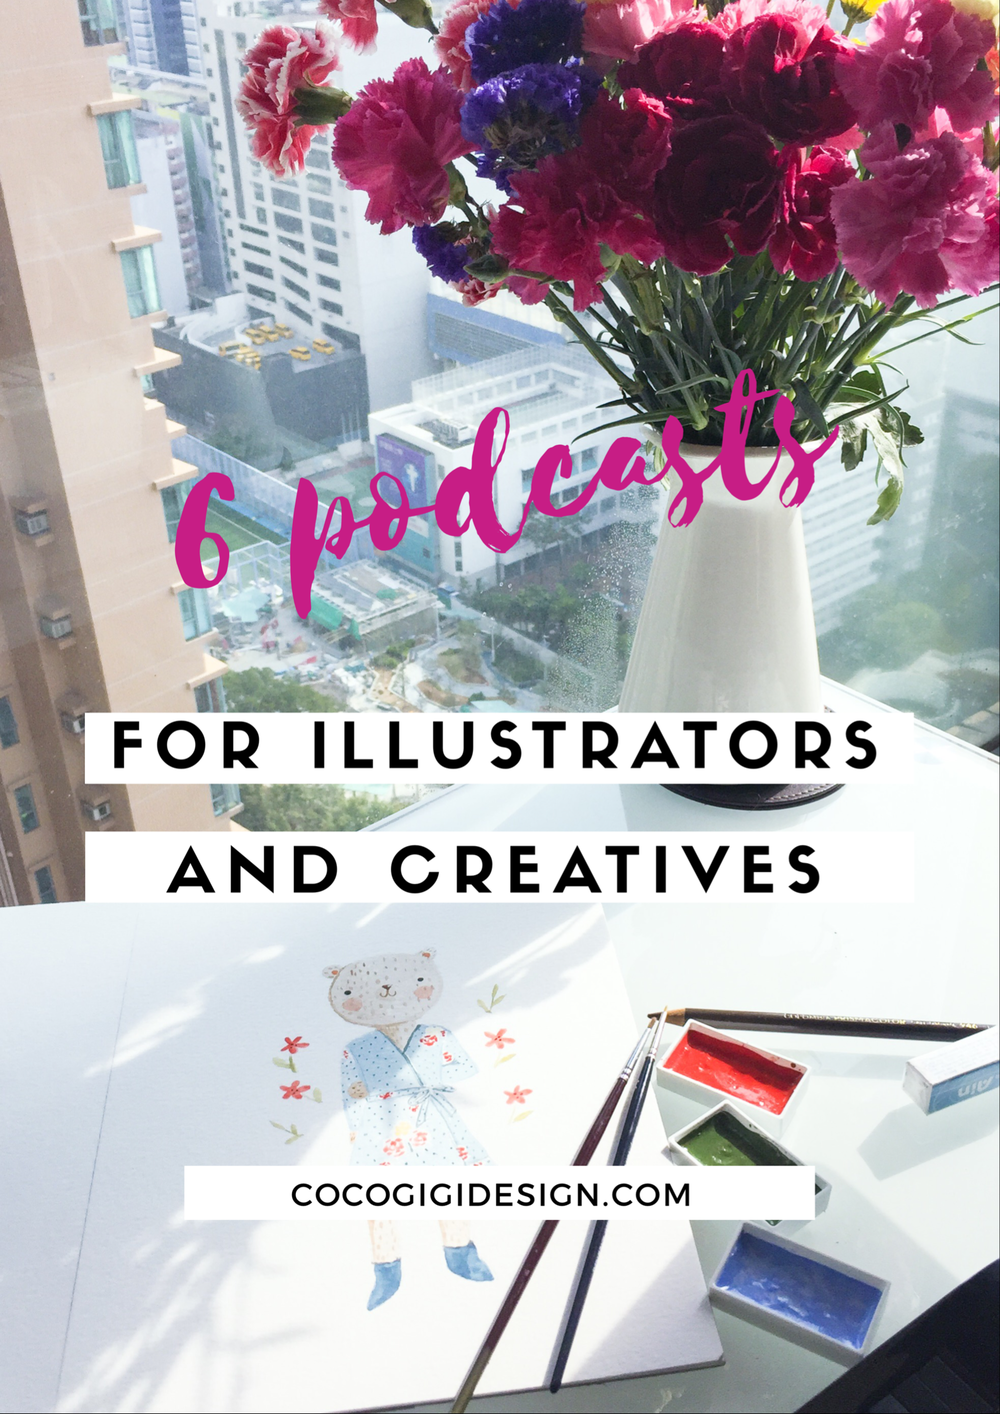 Gina Maldonado - 6 podcasts for illustrators and creatives.jpg.PNG